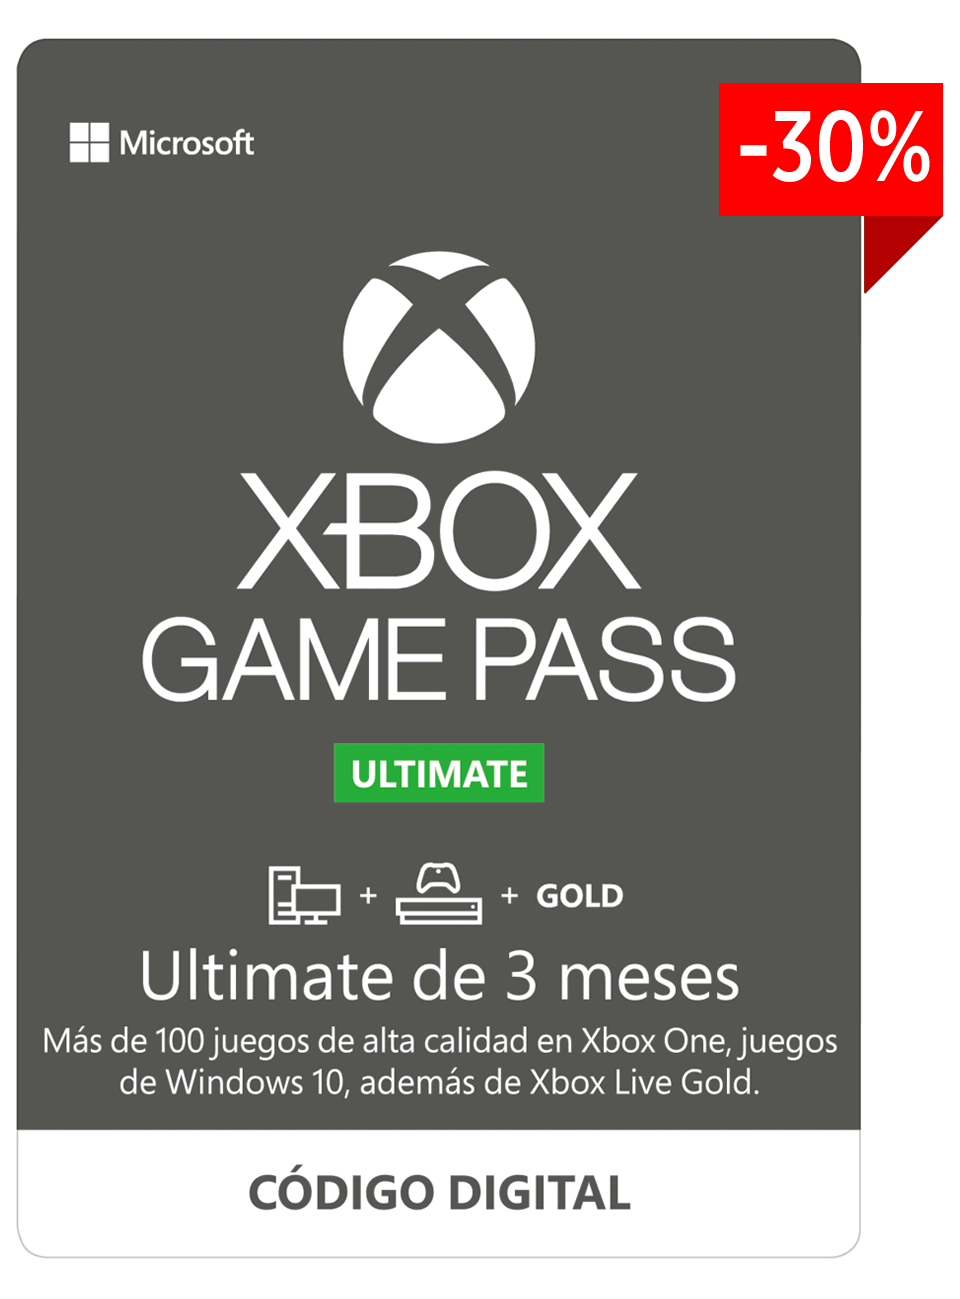 Xbox Game Pass Ultimate 3 meses